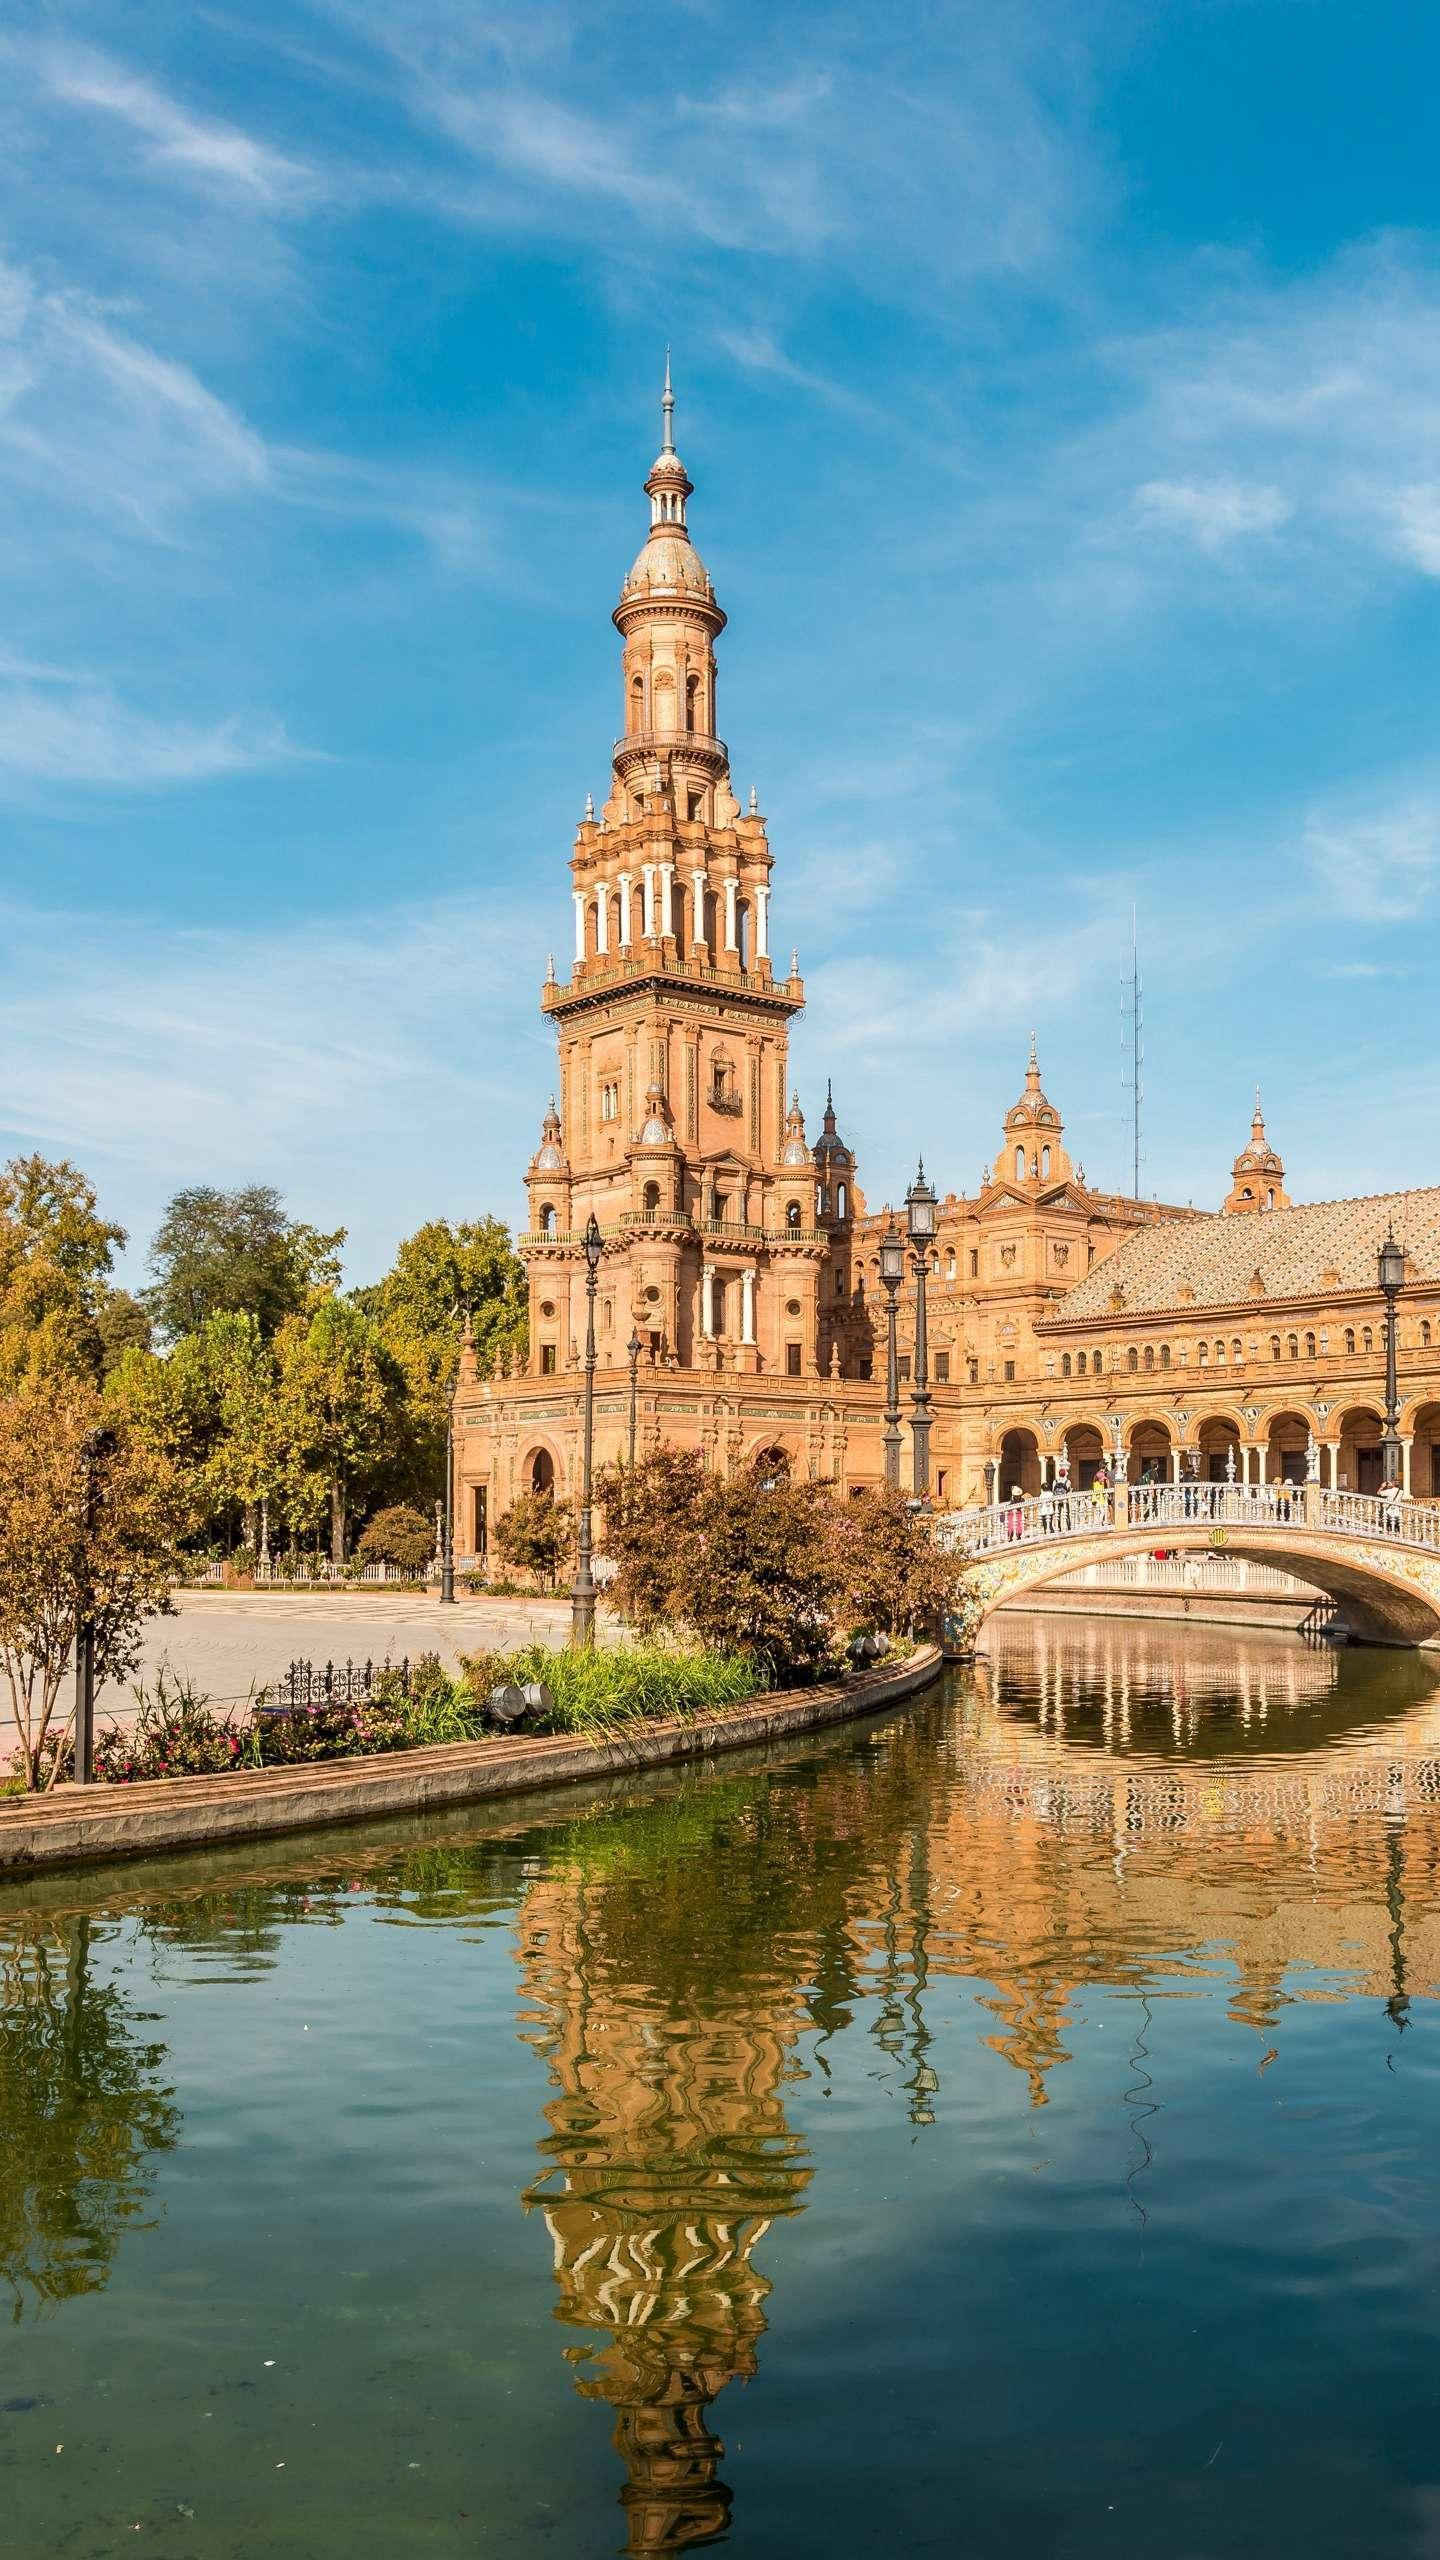 Seville. The prosperity and decline of Seville condensed the rise and fall of the Spanish Empire and was the best testimony to the golden age of Spain.